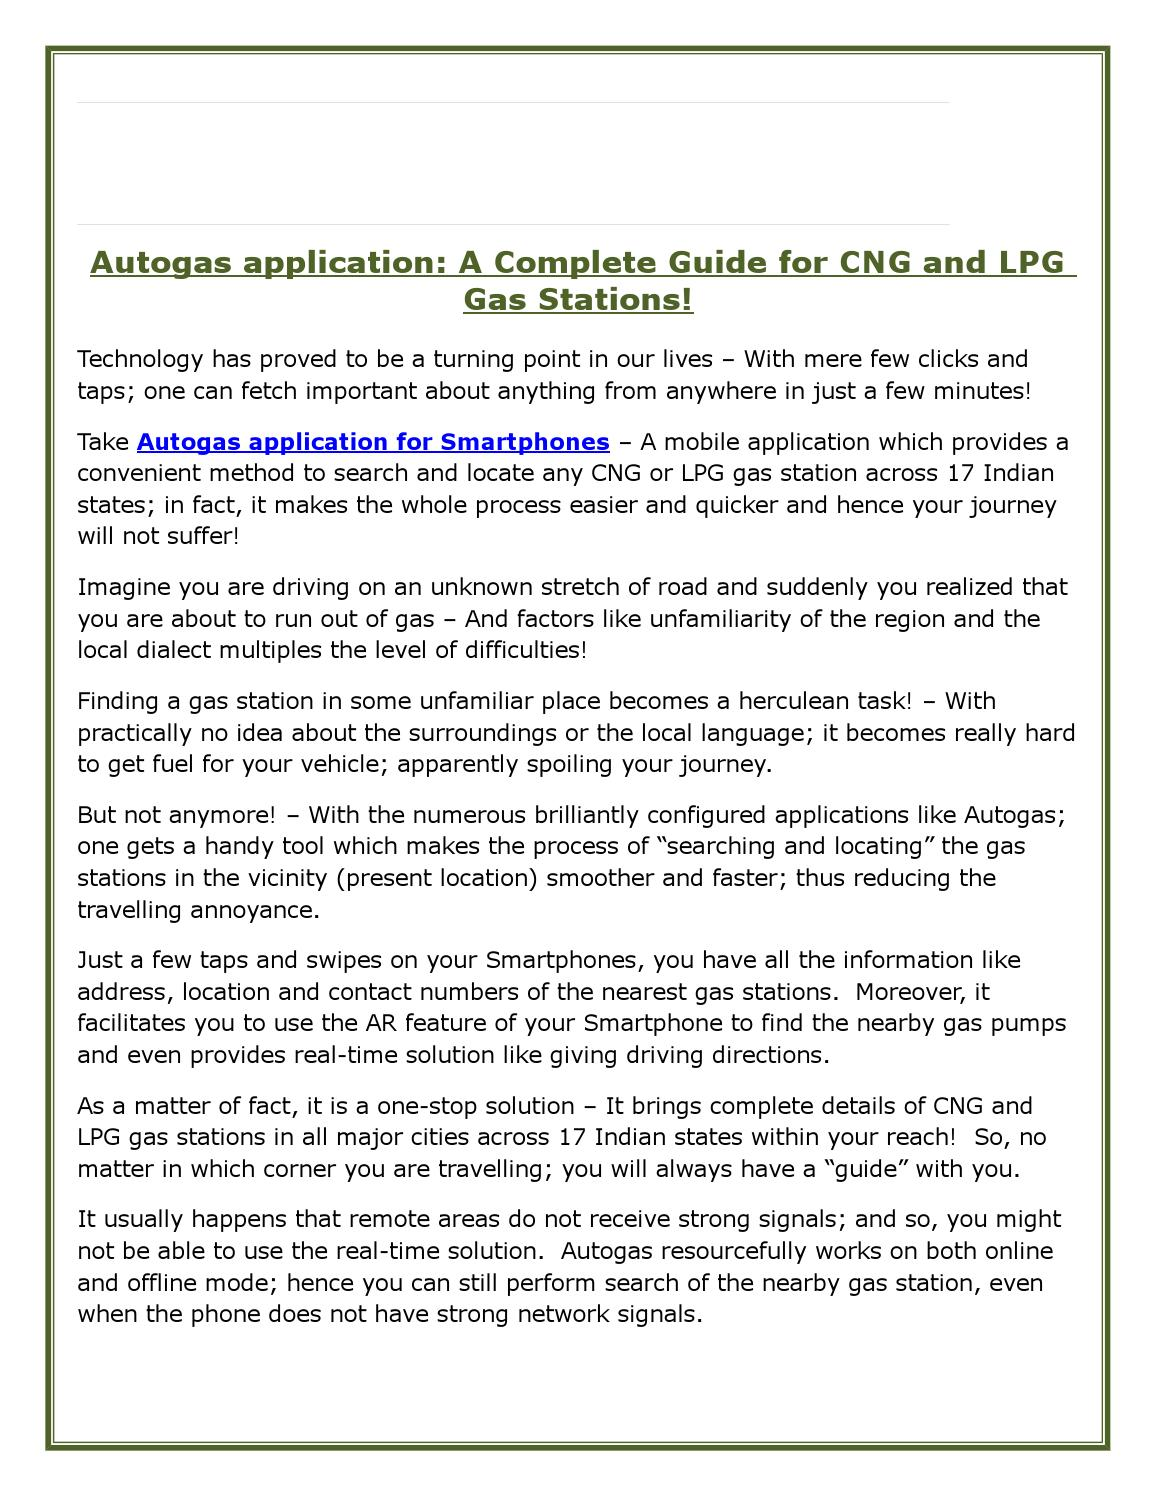 Give Me Directions To The Nearest Gas Station >> Autogas Application A Complete Guide For Cng And Lpg Gas